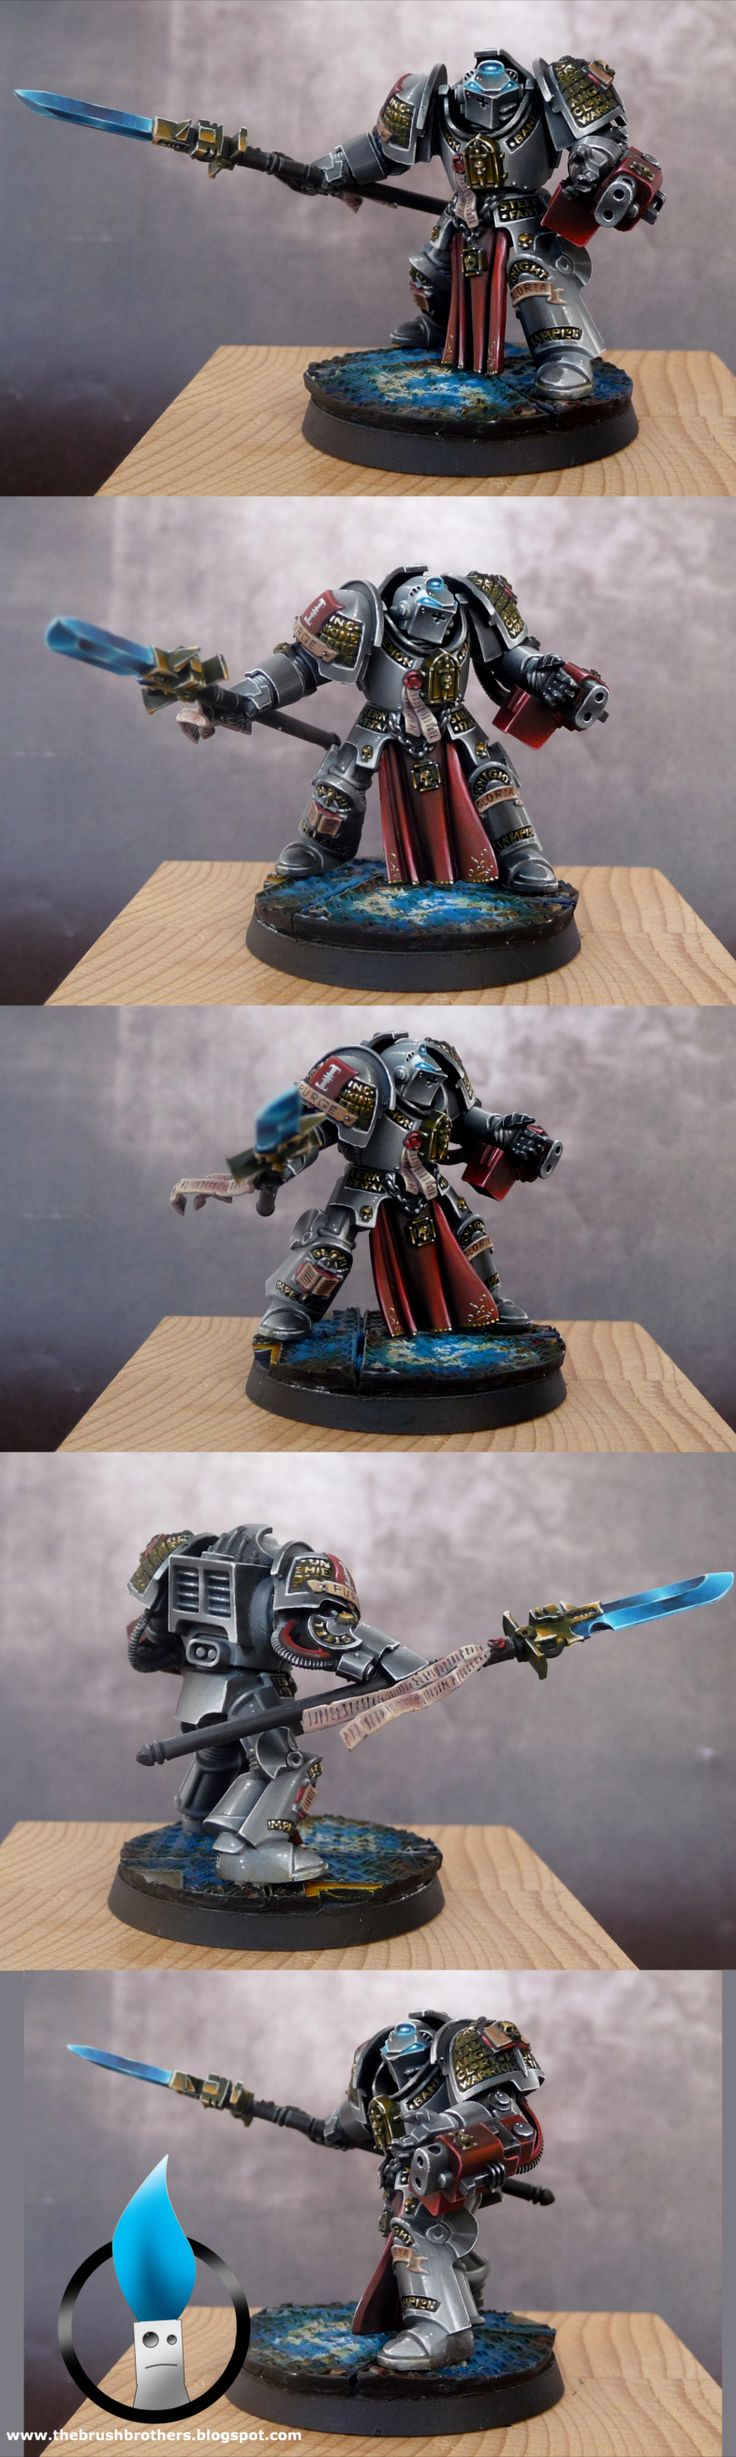 Grey knight- by loler. NMM on bolter muzzle... must try that style.